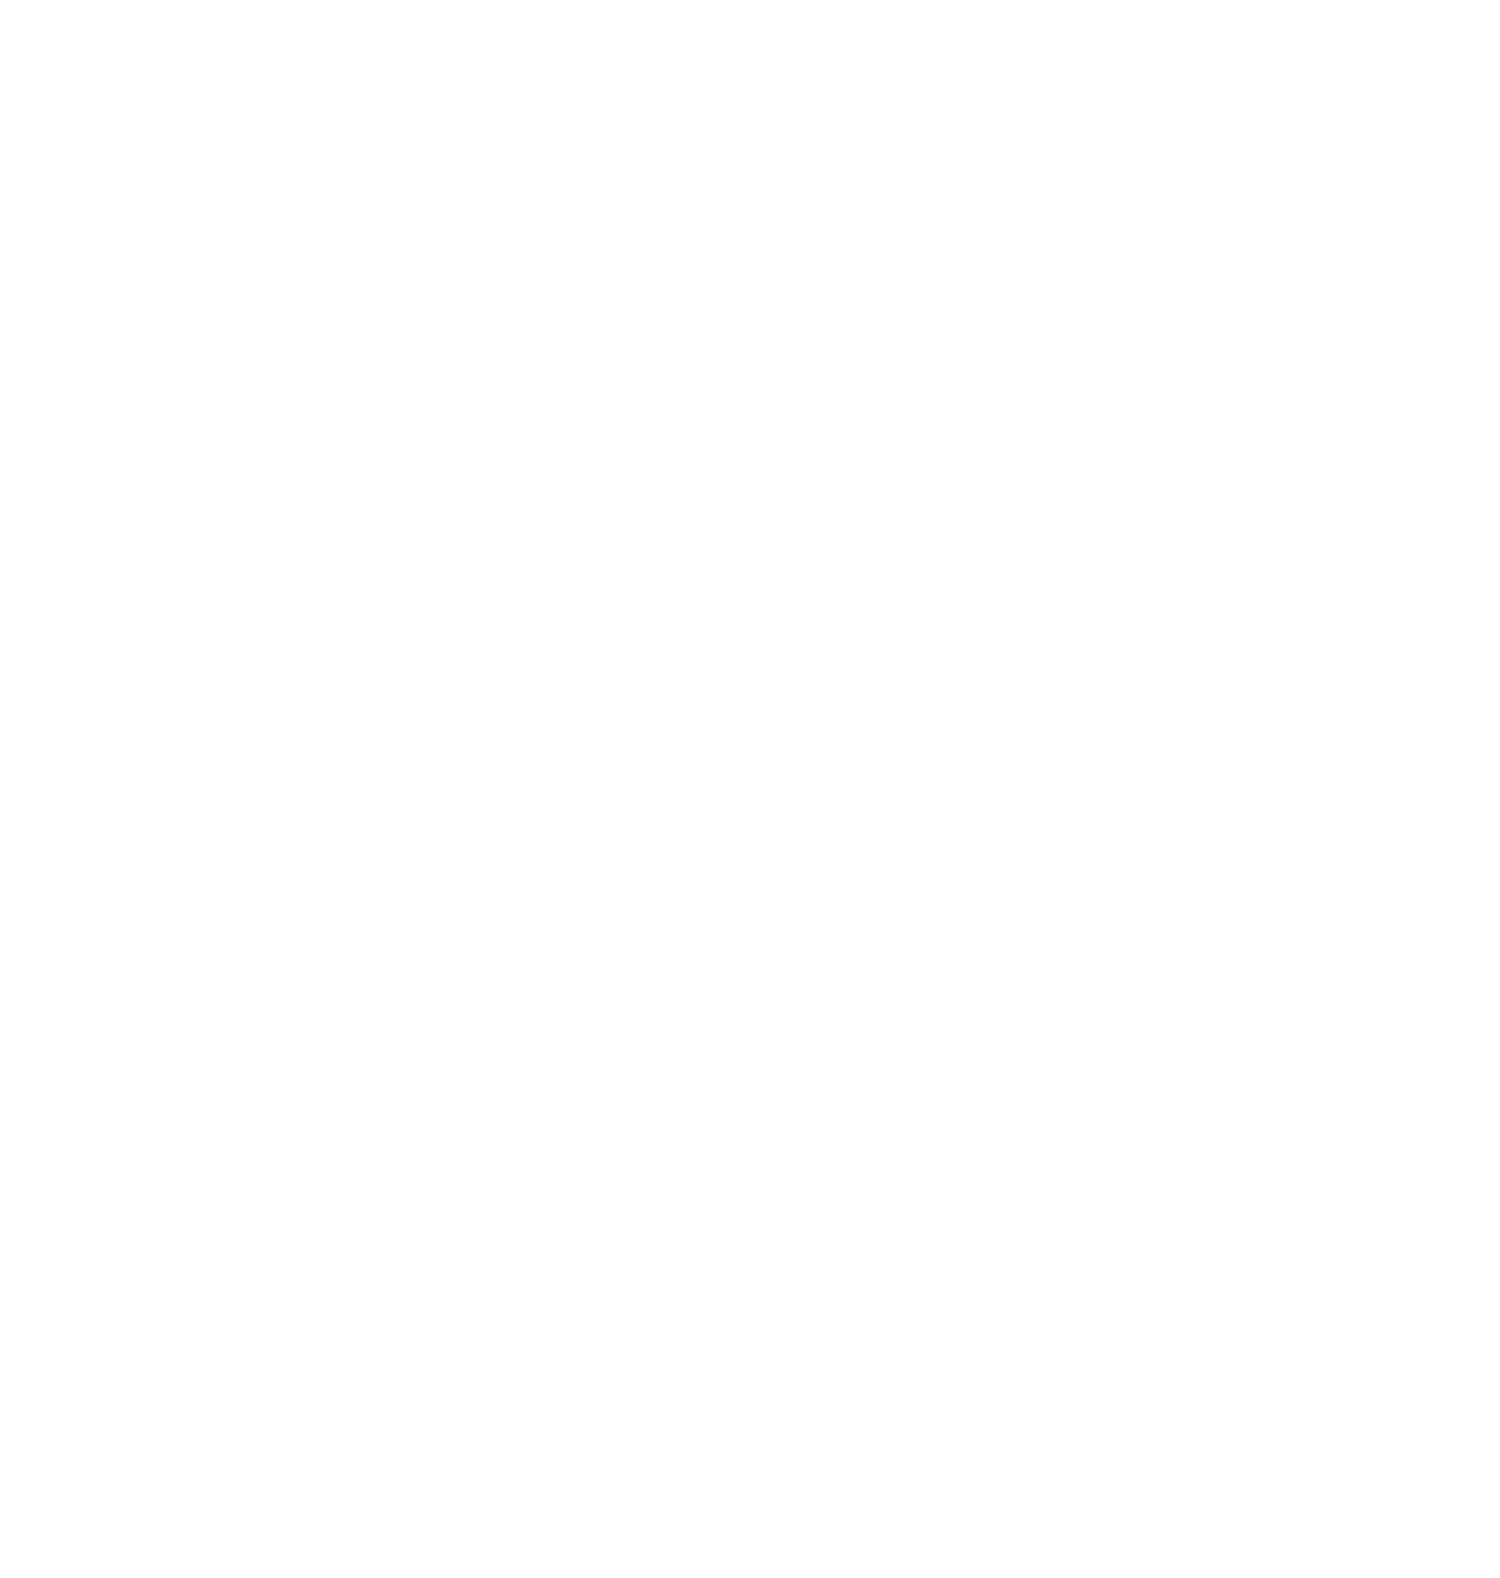 Auspicious Baking Co.